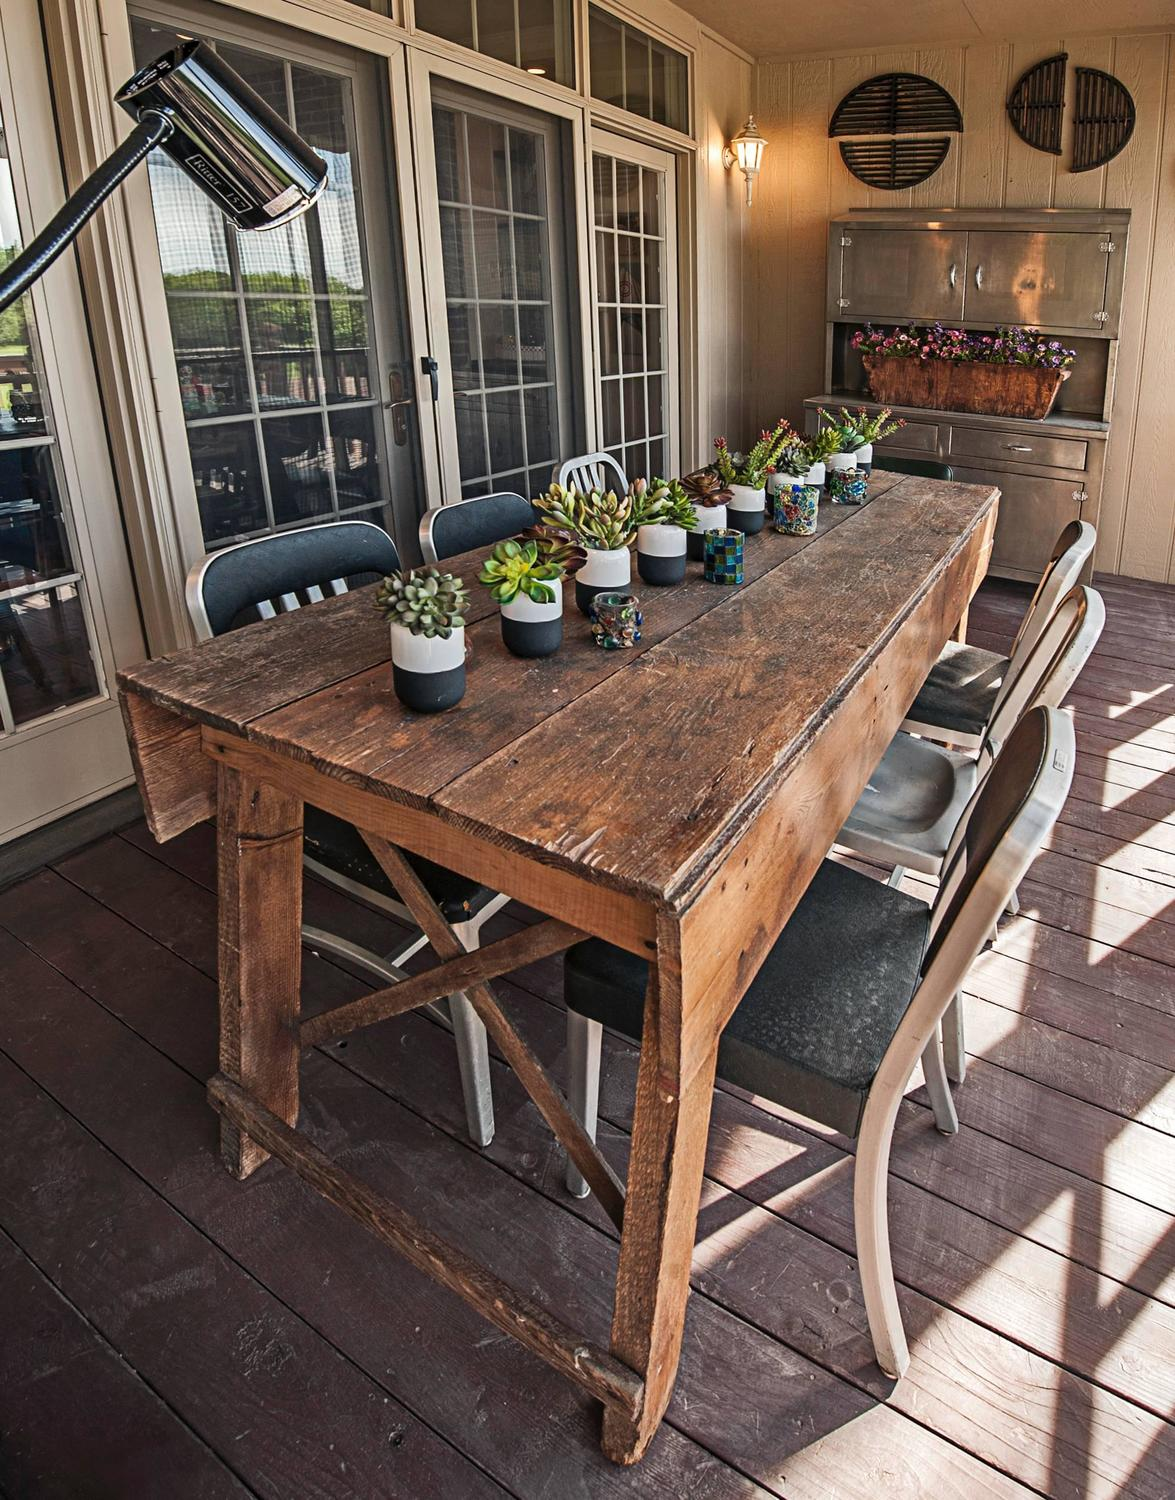 Primitive Industrial Farmhouse Style Dining Table ...